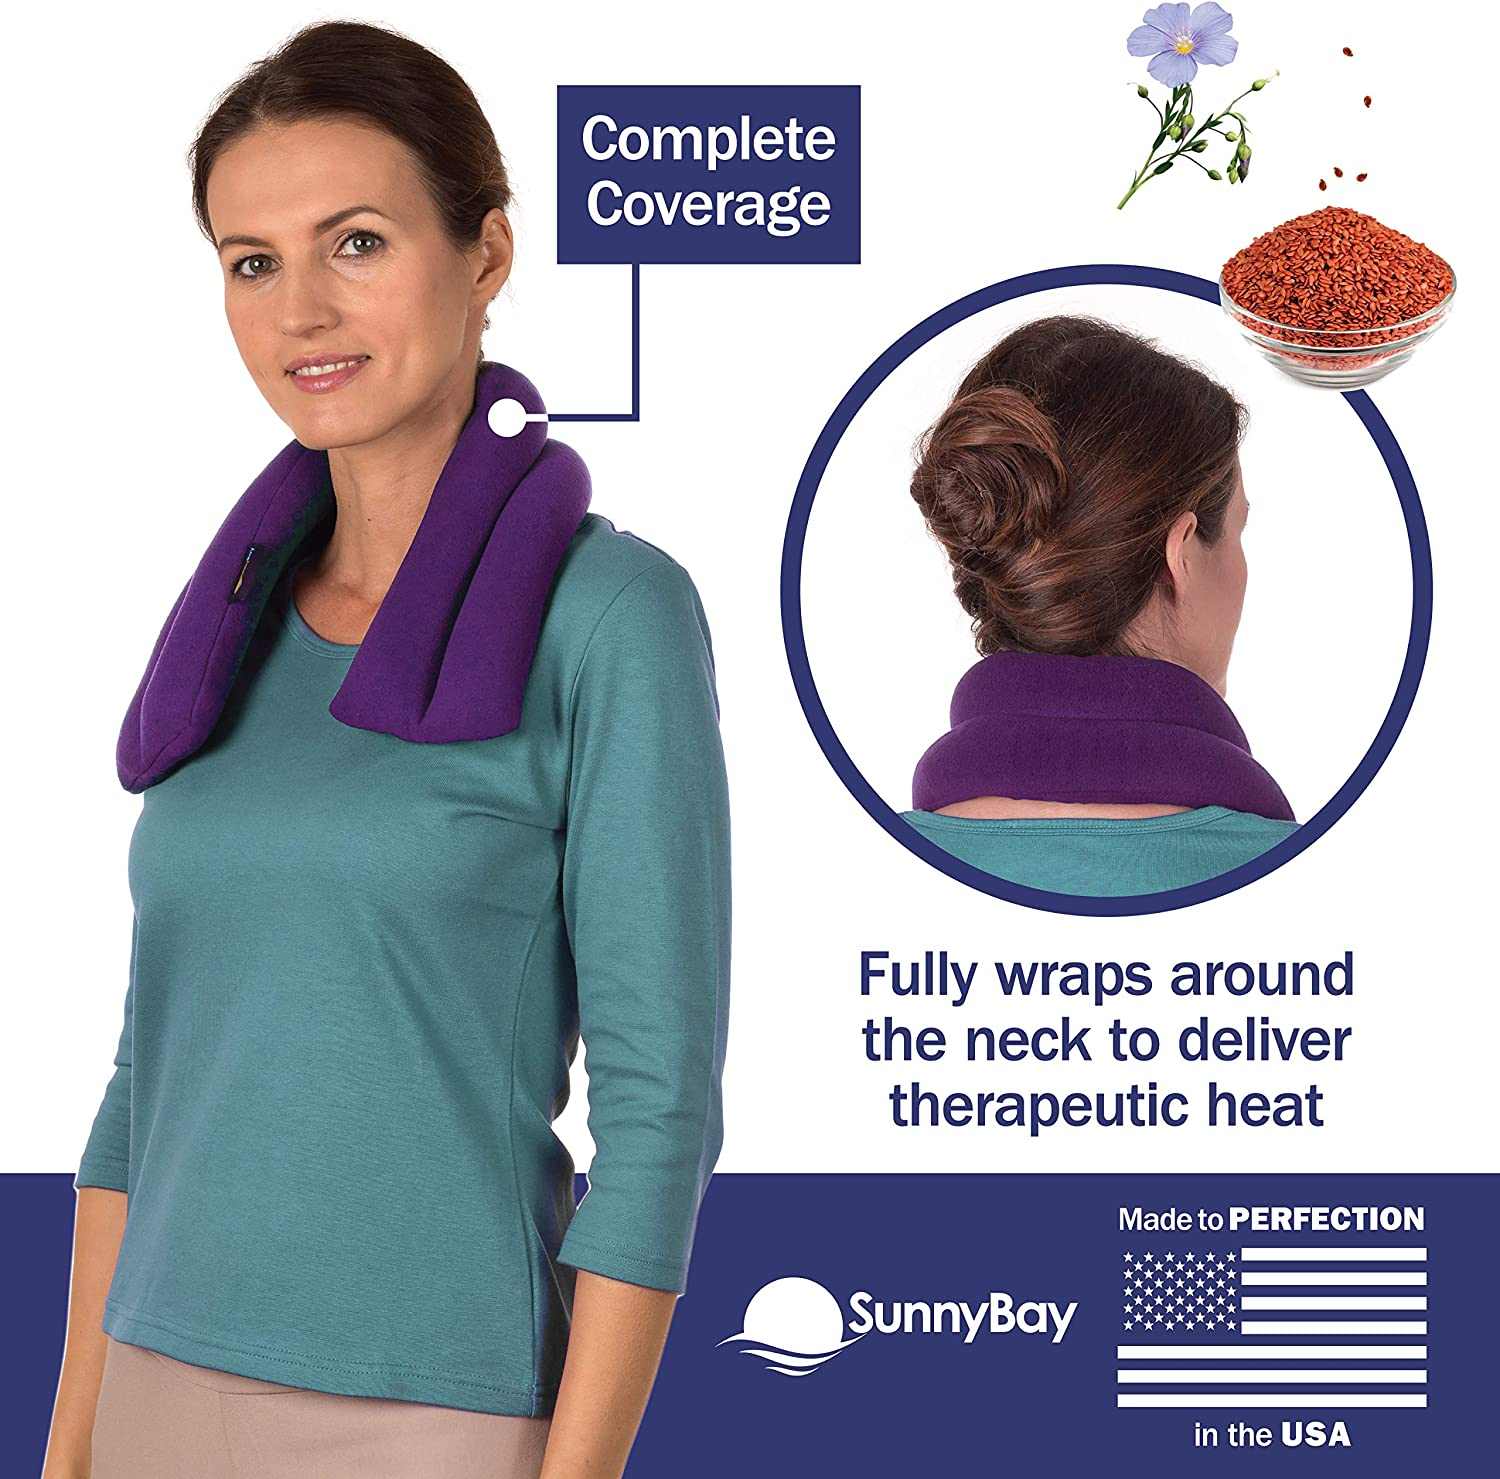 Microwave Heating Pad for Neck & Shoulders - Cotton & Fleece Hot Packs for Pain - Bean Bag Heating Pad Microwavable - Hot Compresses for The Body Therapy